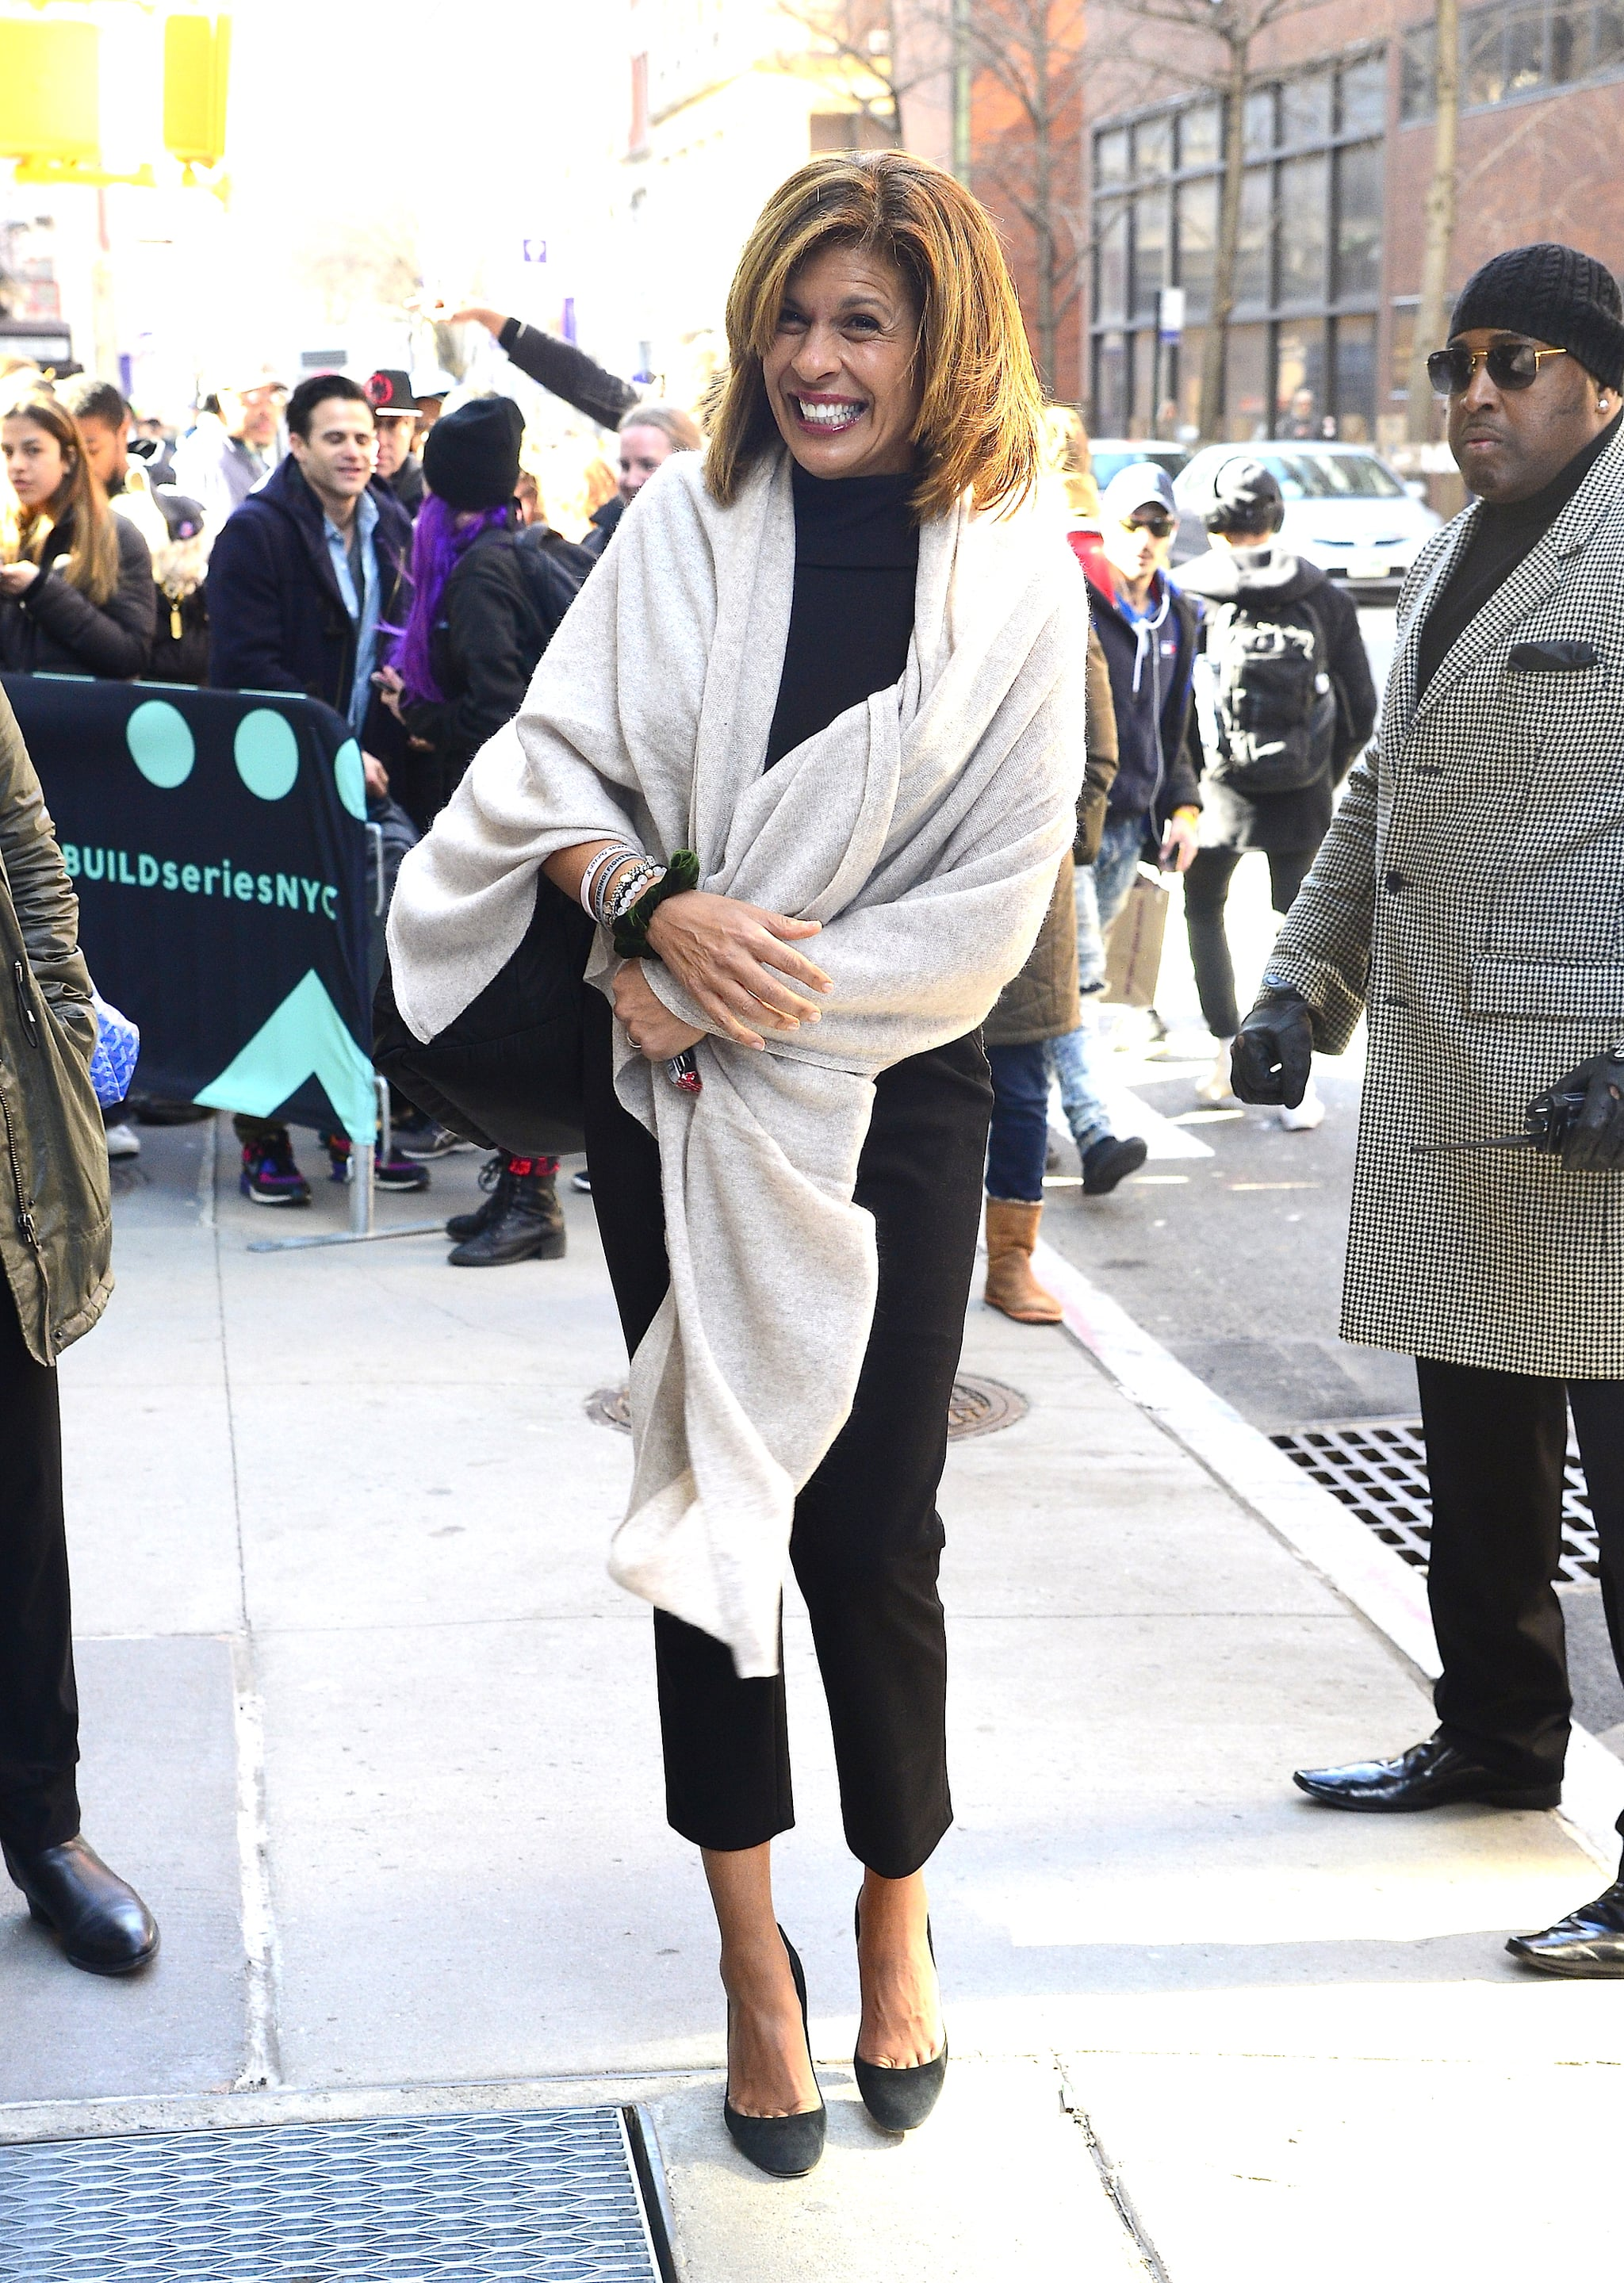 NEW YORK, NY - MARCH 12:  Hoda Kotb is seen outside Build Studio on March 12, 2019 in New York City.  (Photo by Raymond Hall/GC Images)